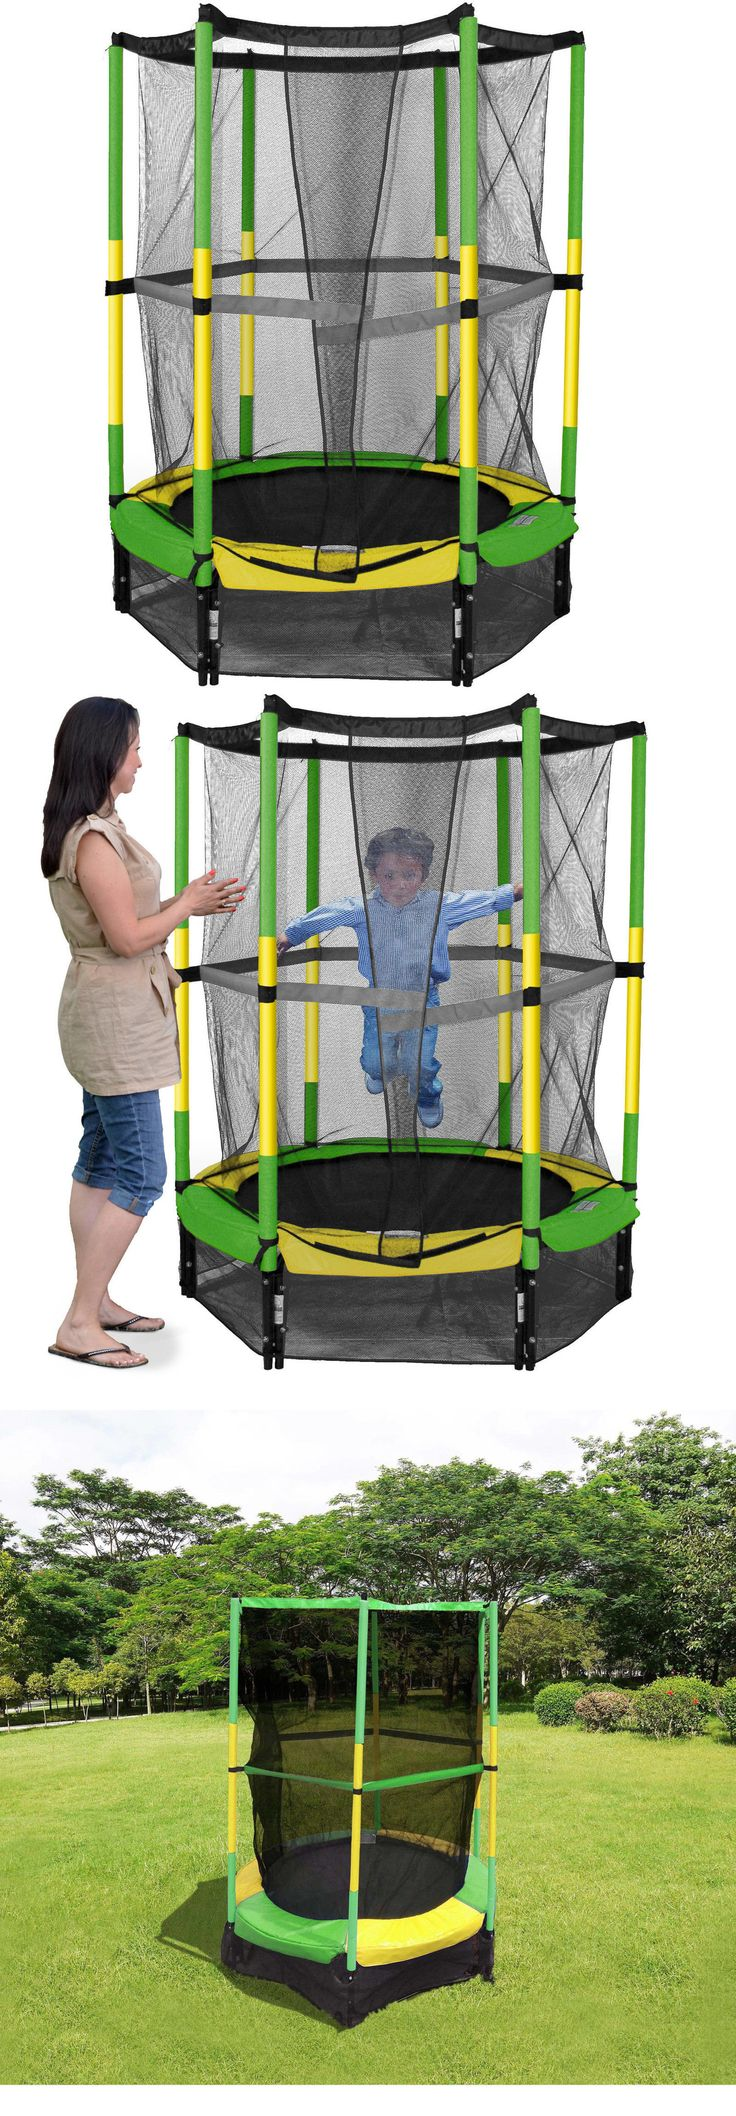 Trampolines 145999: The Bounce Pro 55 My First Trampoline -> BUY IT NOW ONLY: $73.22 on eBay!